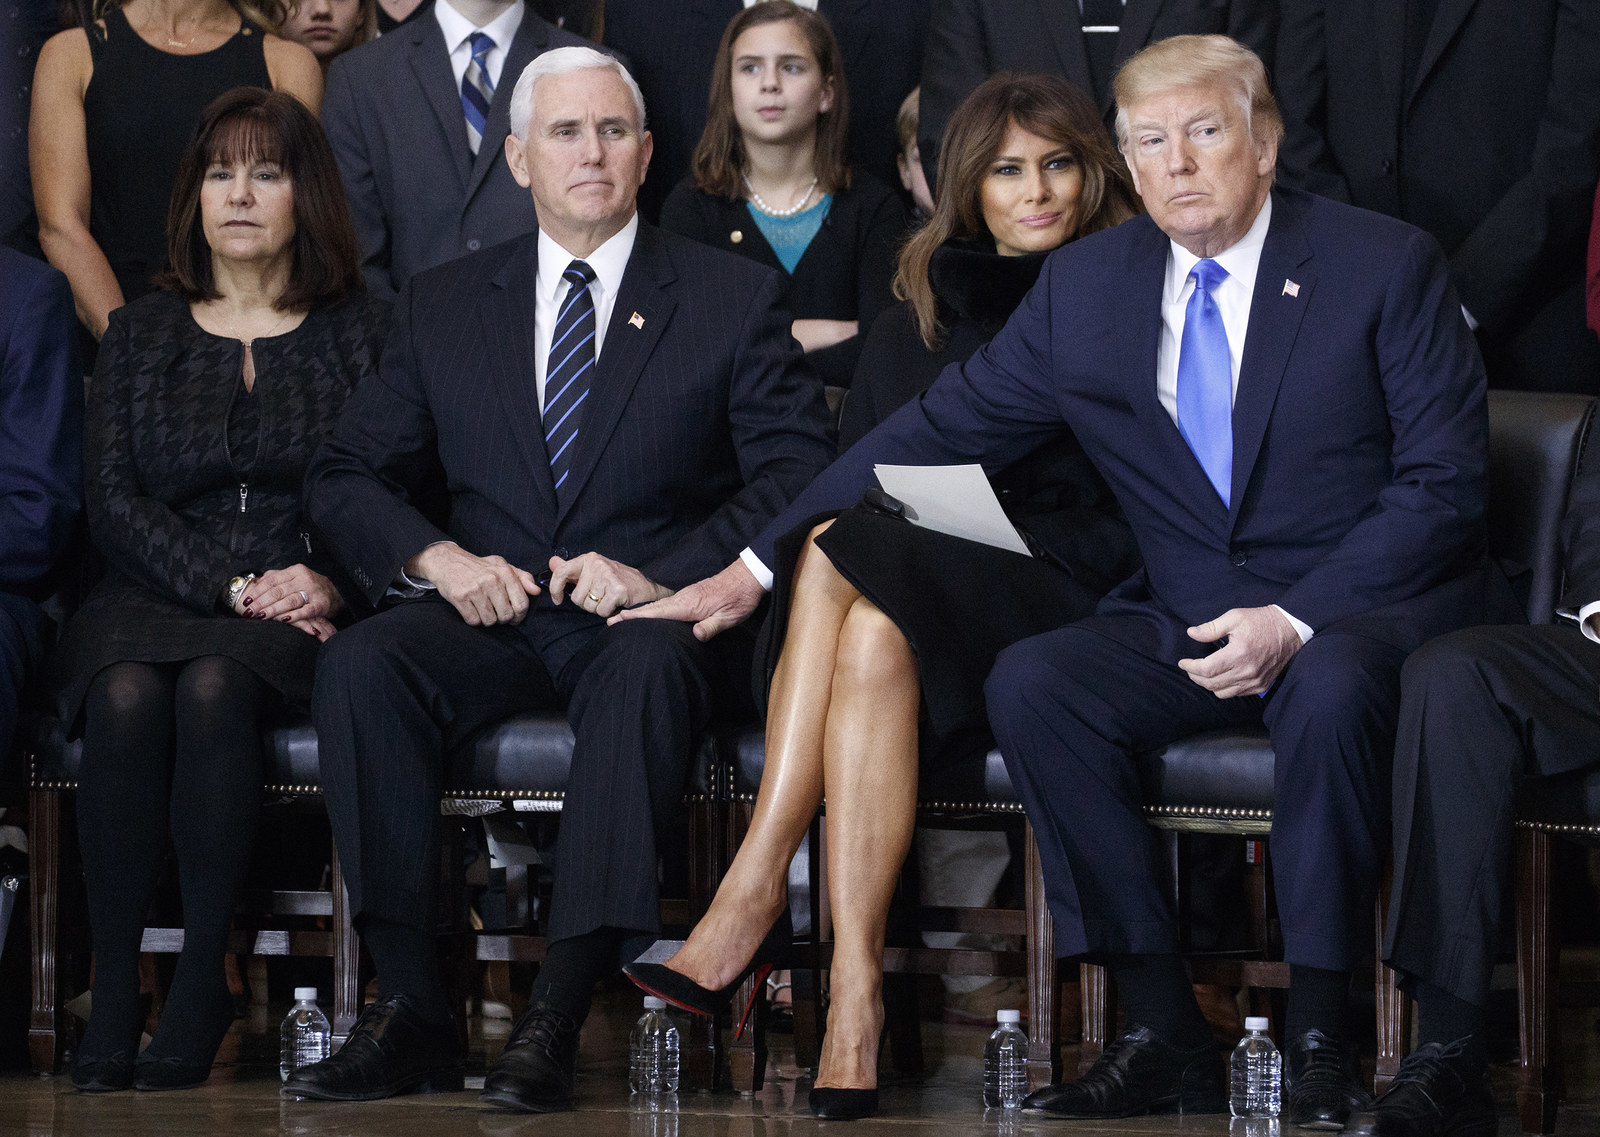 Vice President Mike Pence, Second Lady Karen Pence, President Trump and First Lady Melania attend a service for the late evangelist Billy Graham on February 28.